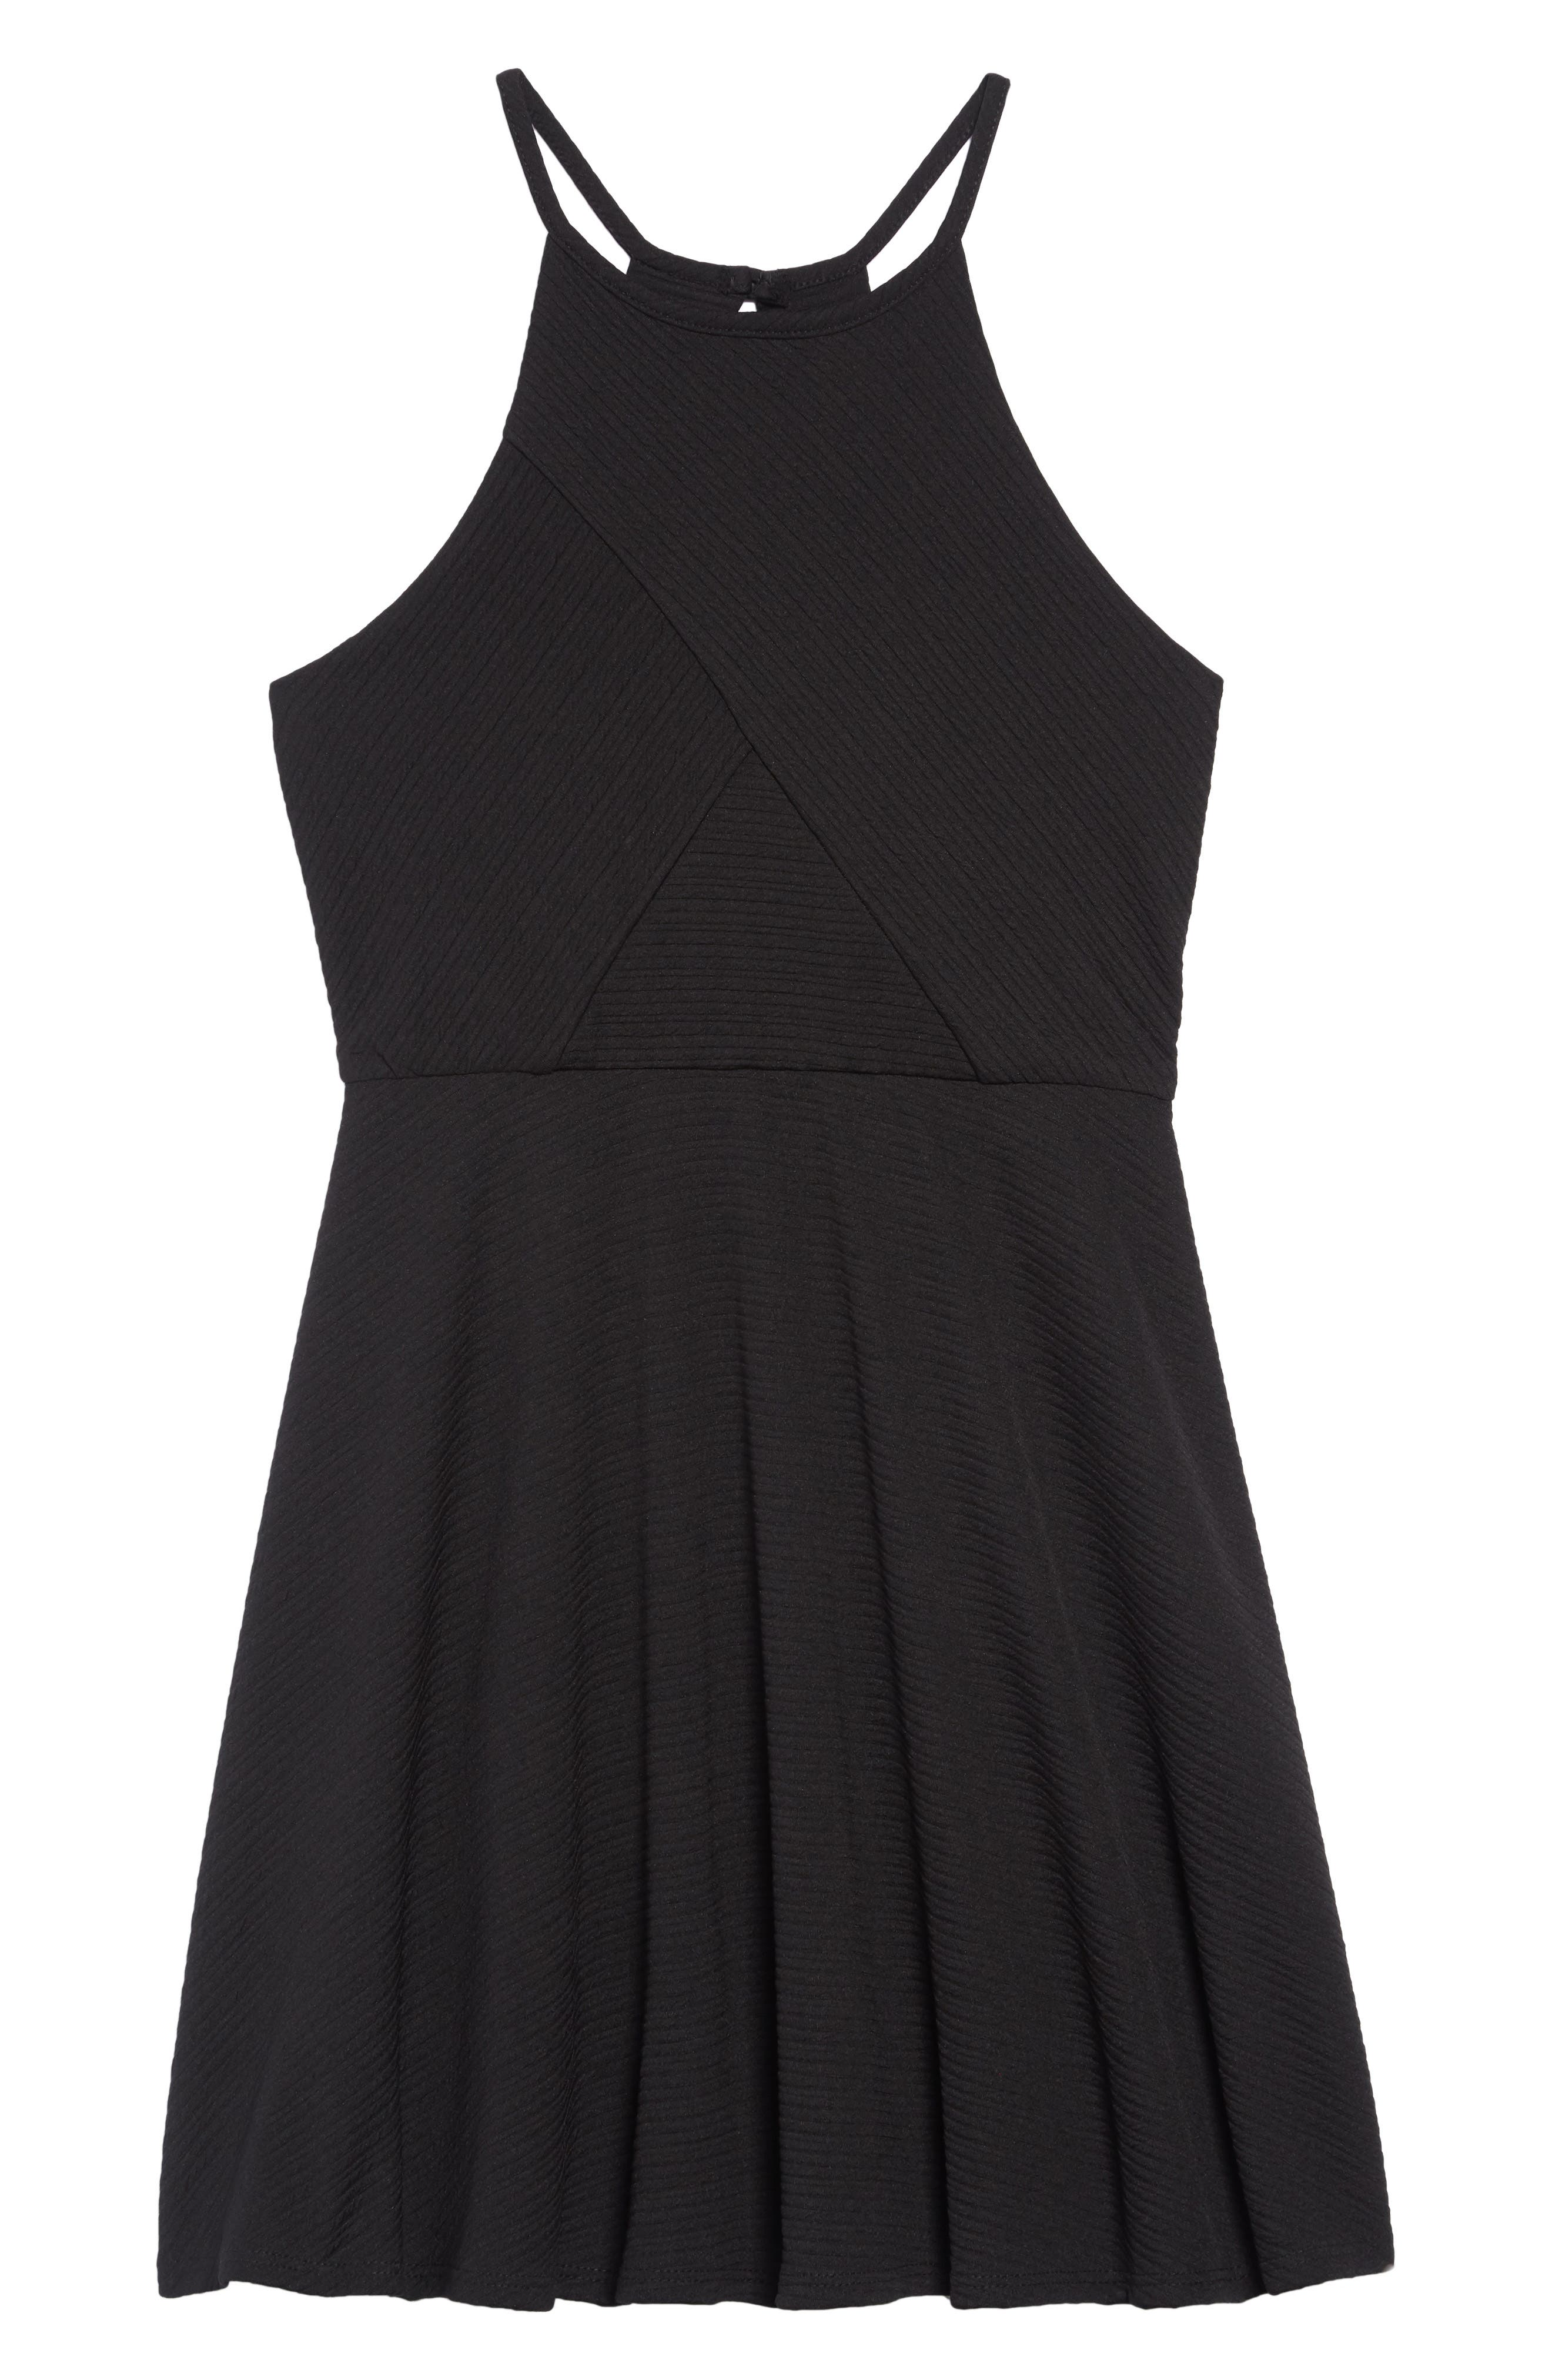 Textured Skater Dress,                         Main,                         color, 001